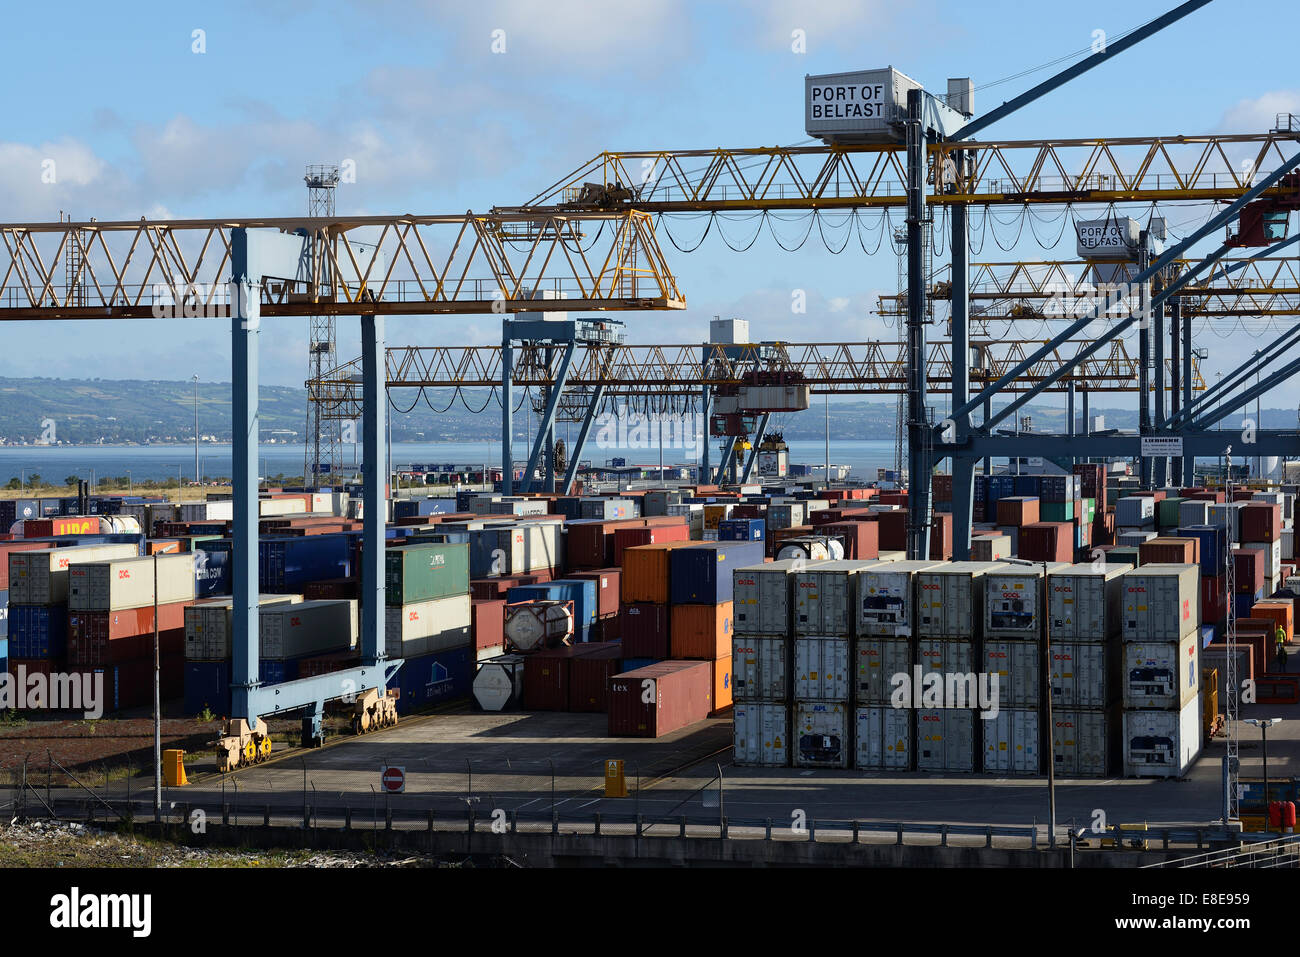 Gantry cranes and shipping containers at the Port of Belfast docks - Stock Image